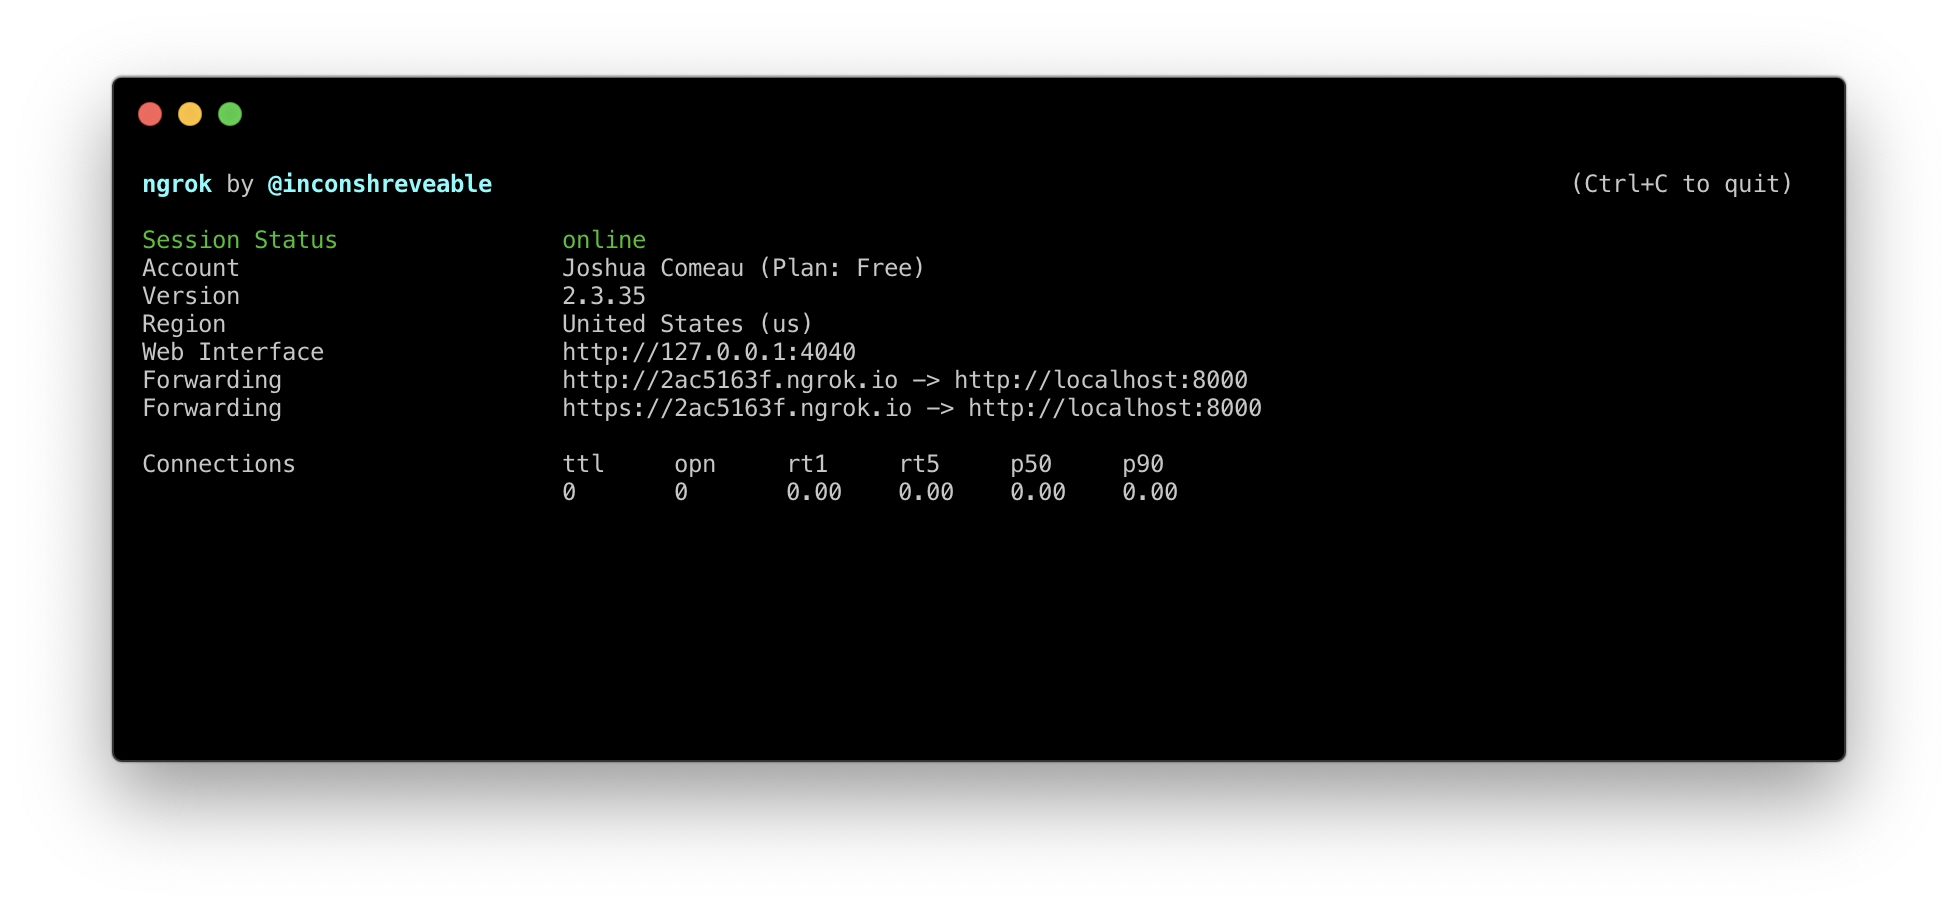 Terminal screenshot showing the forwarding URL that ngrok provides